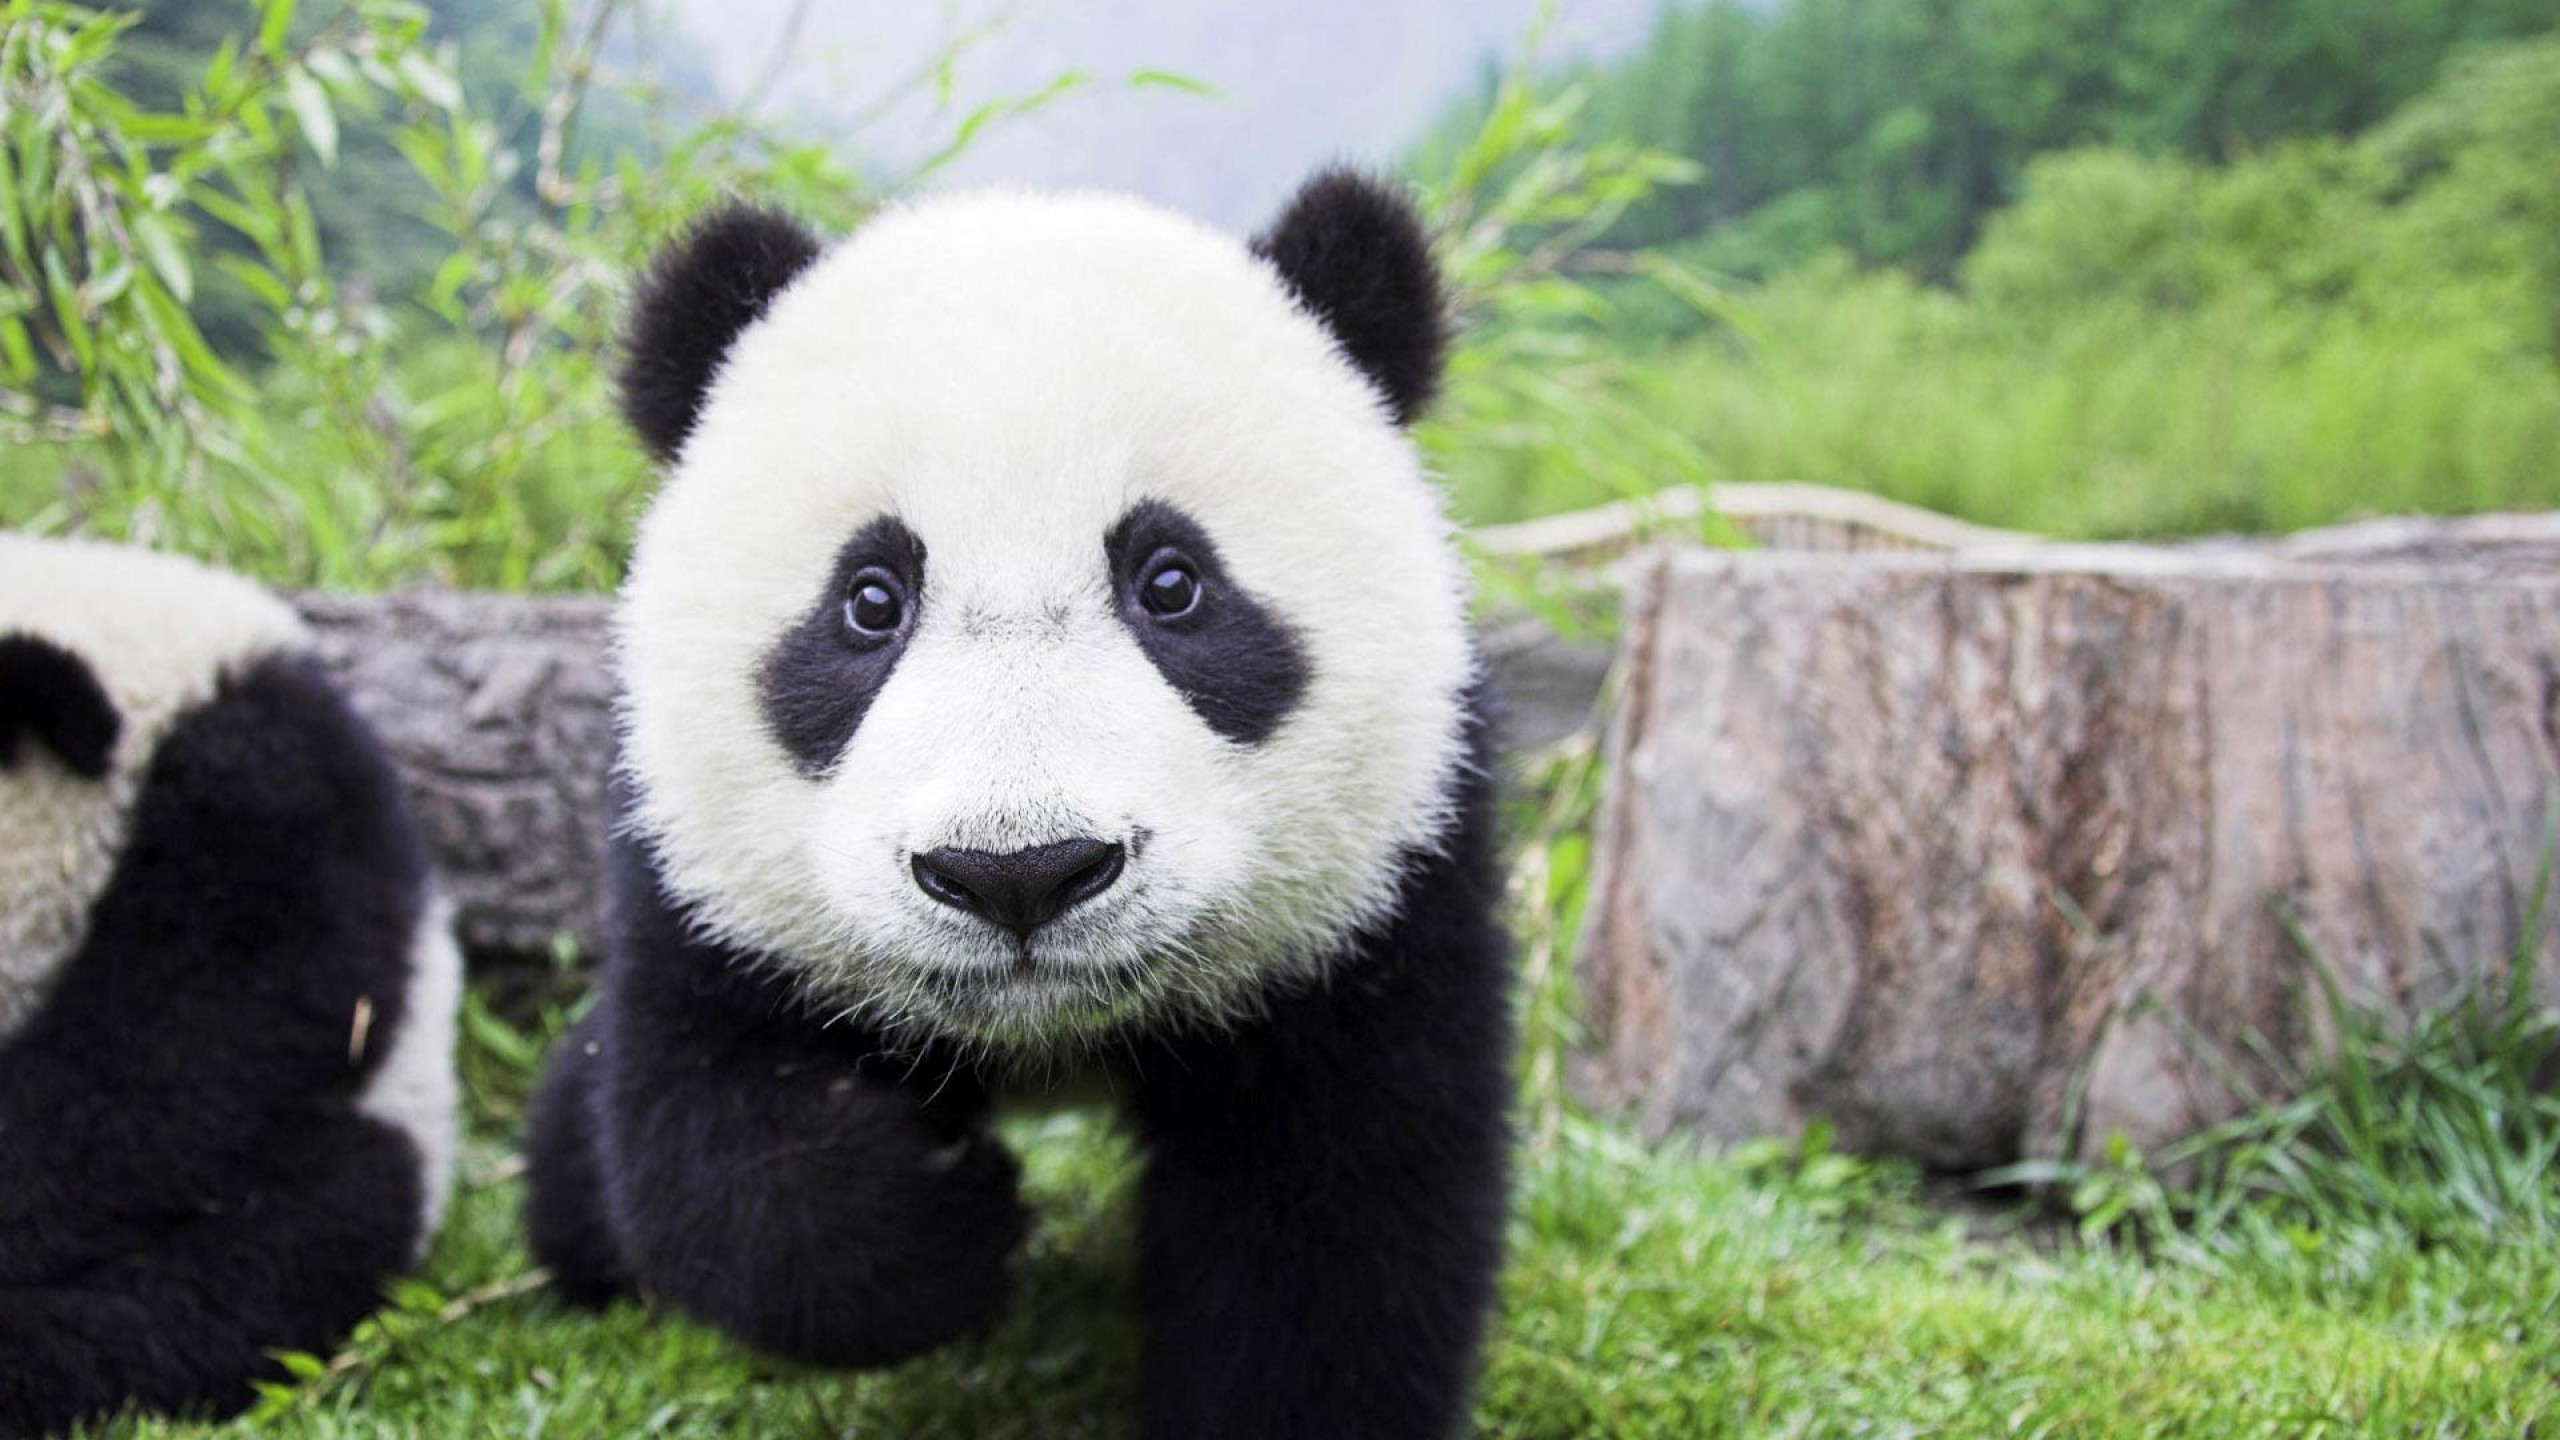 Baby Panda Wallpapers   Amazing wallpapers and